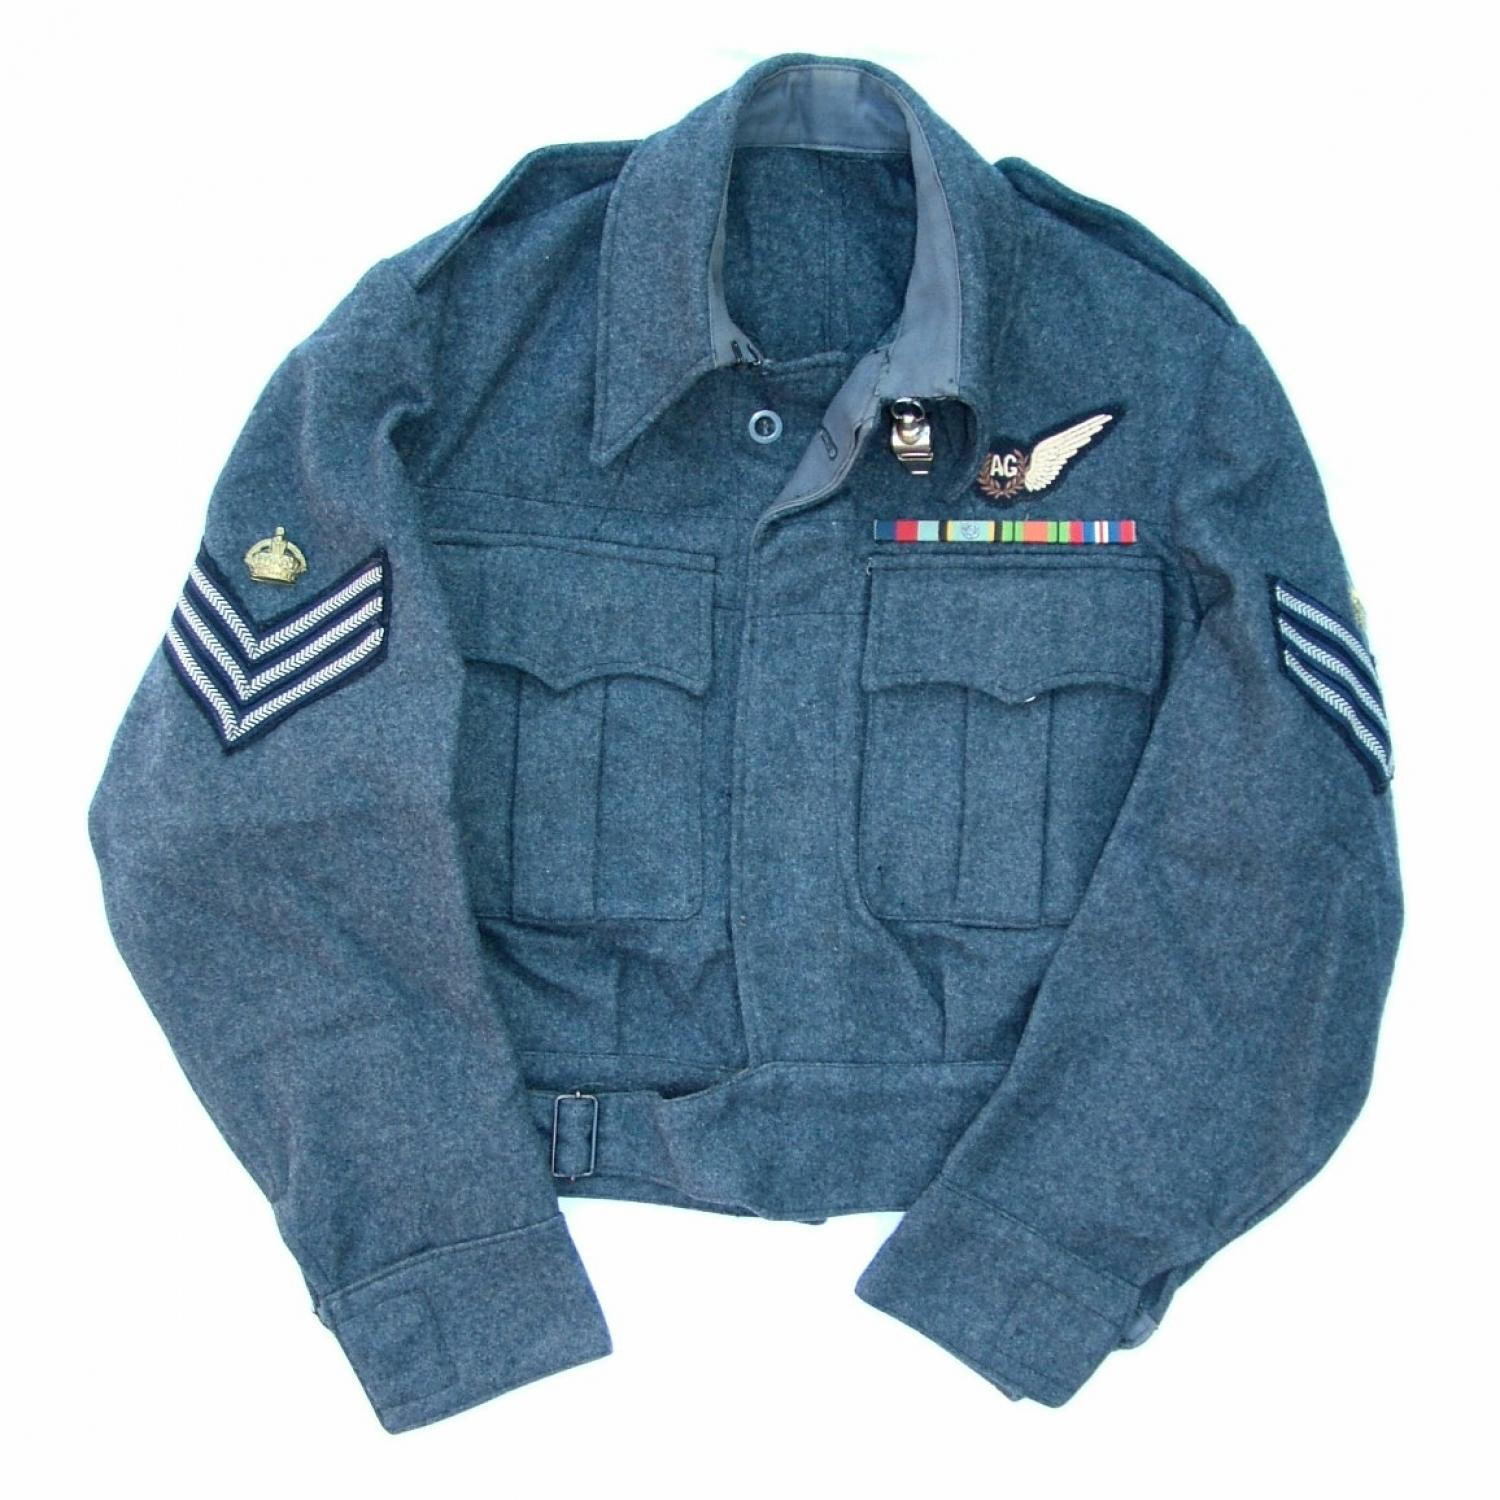 RAF Airgunner's Aircrew Blouse